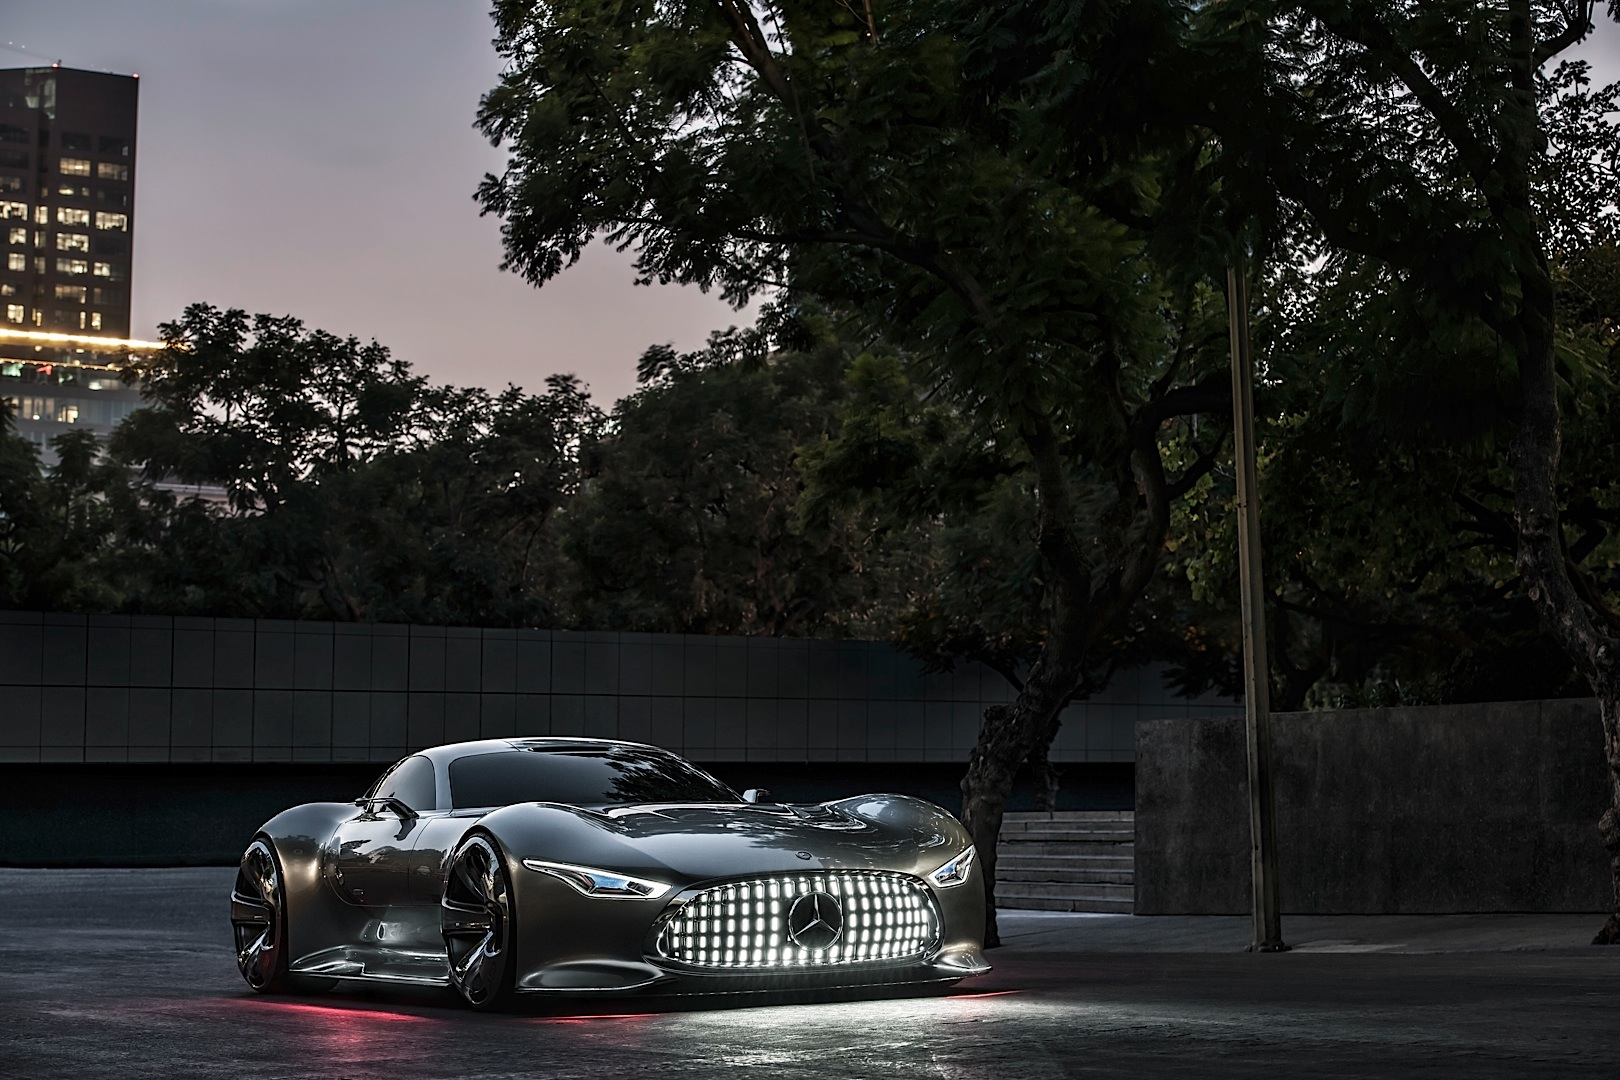 Mercedes Benz Design Manager Gives Interview About Amg